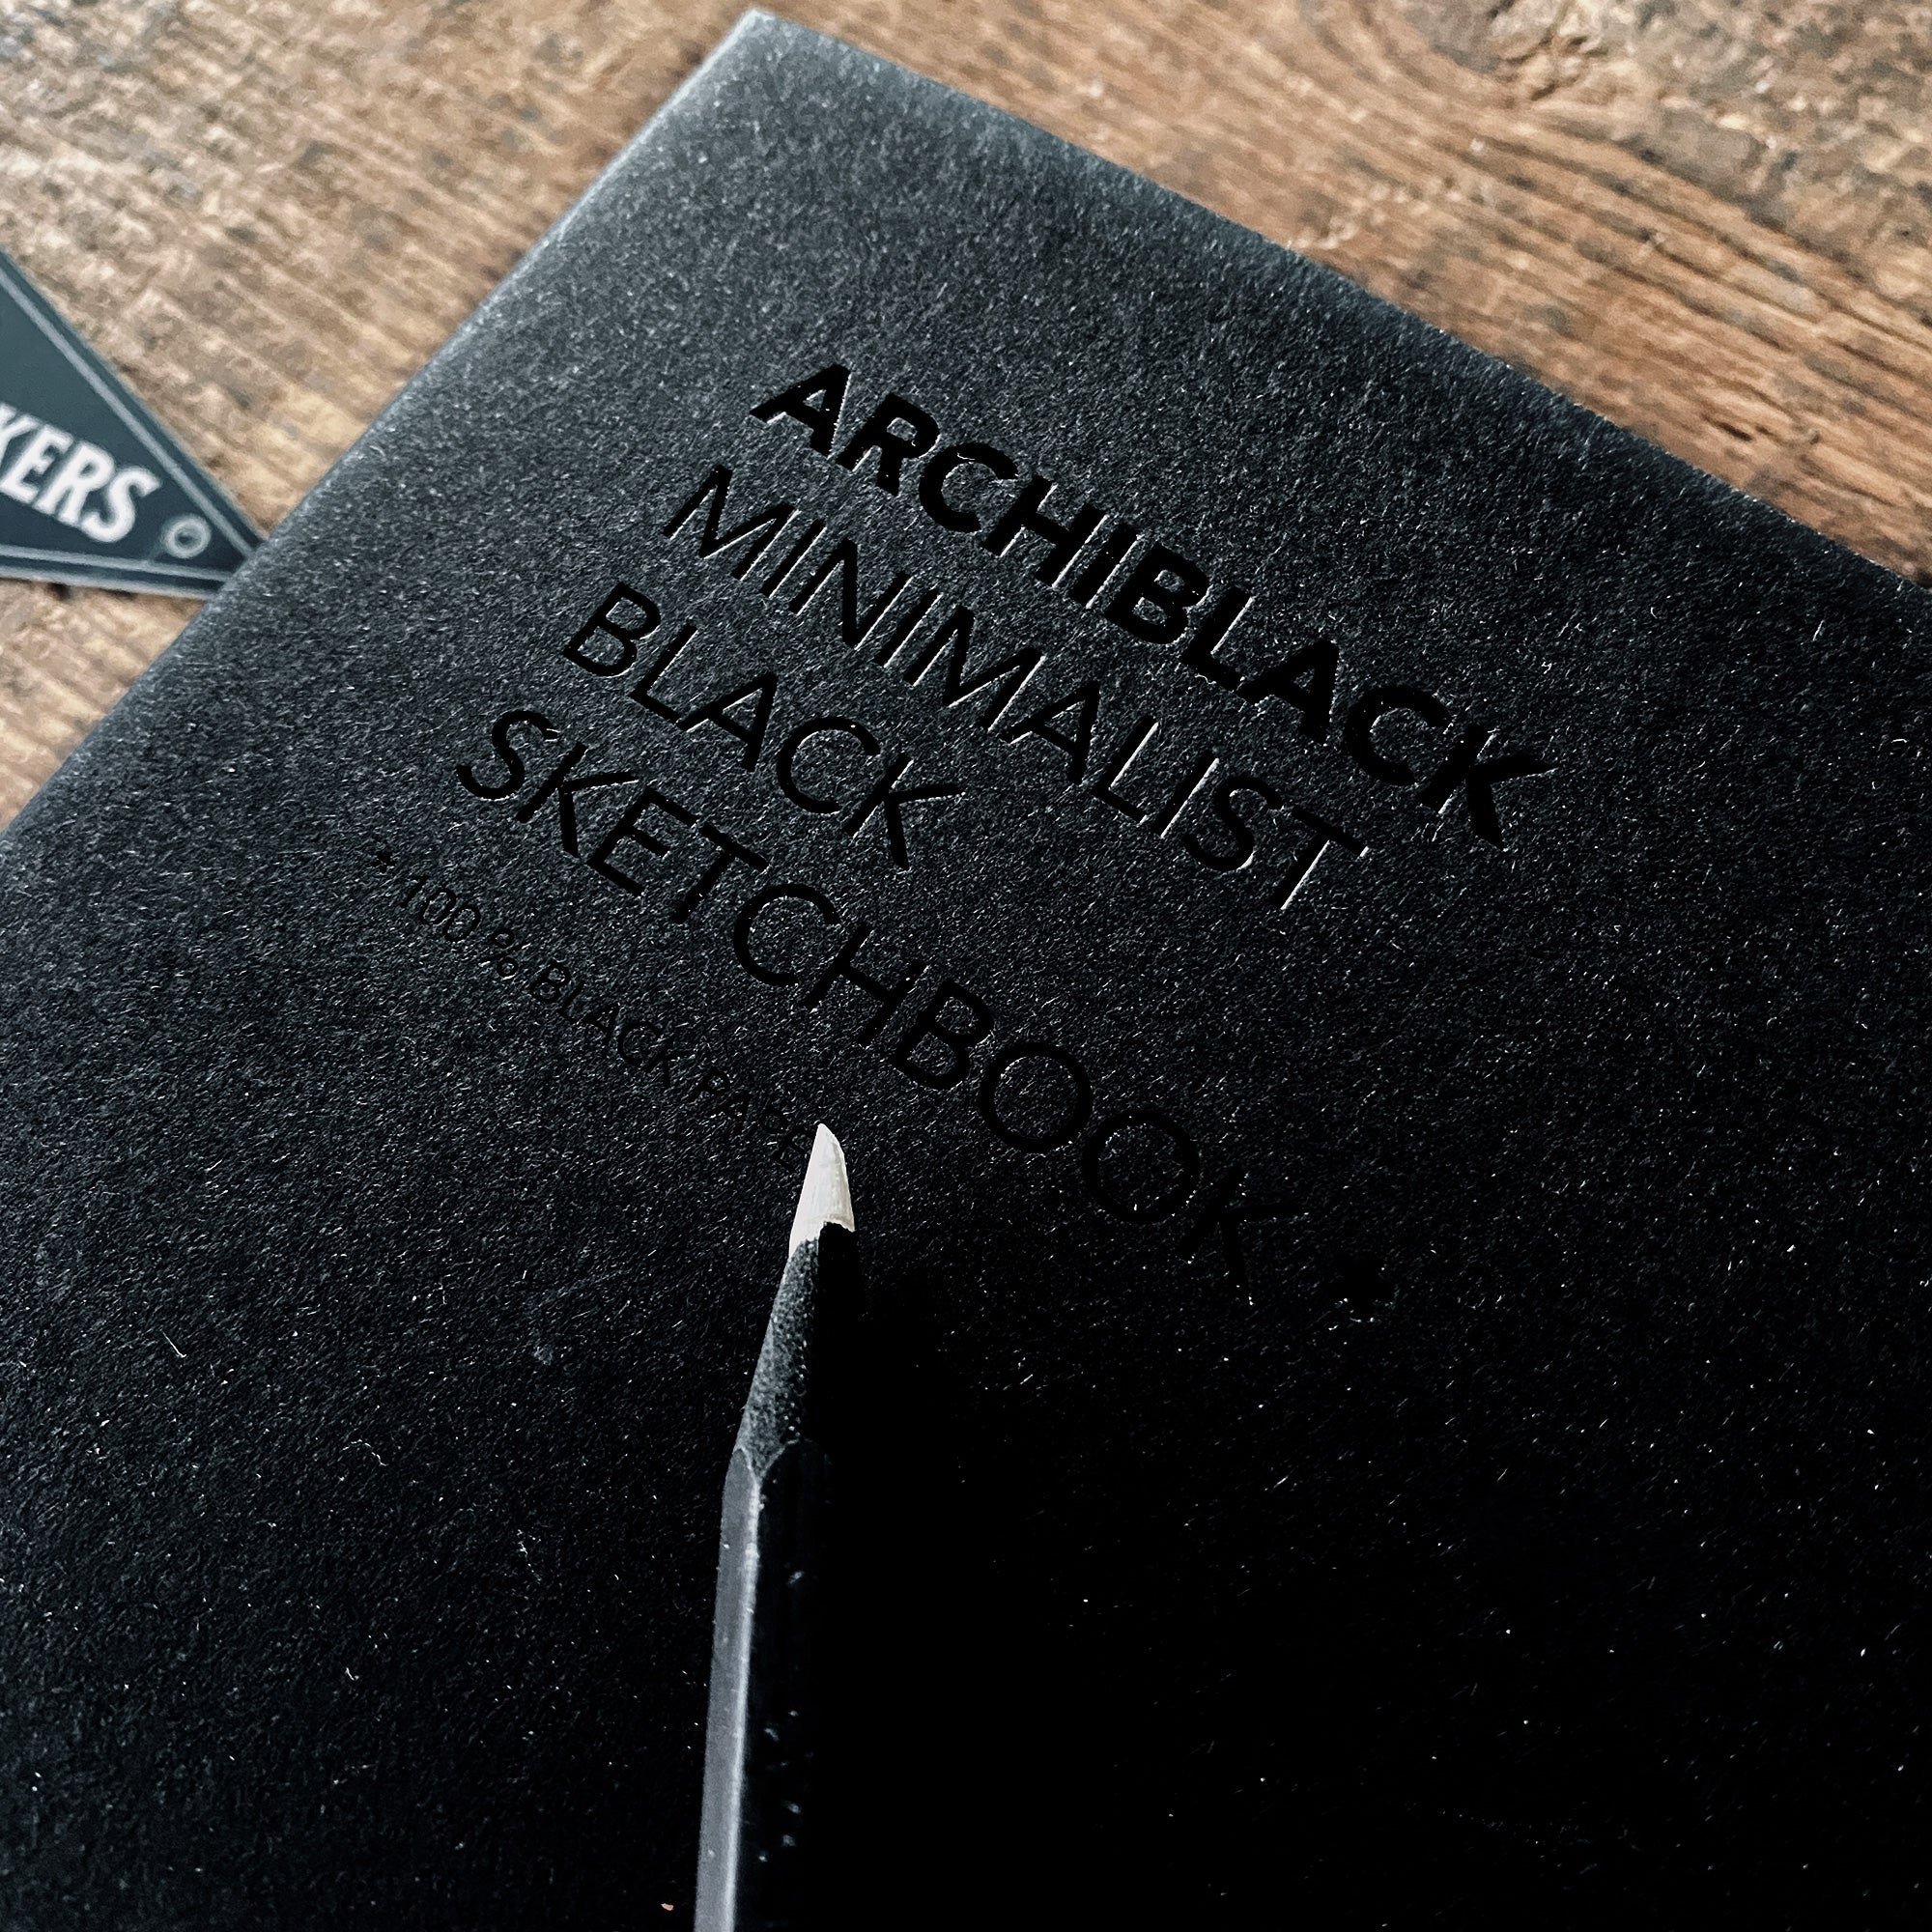 ARCHIBLACK - Black Sketchbook